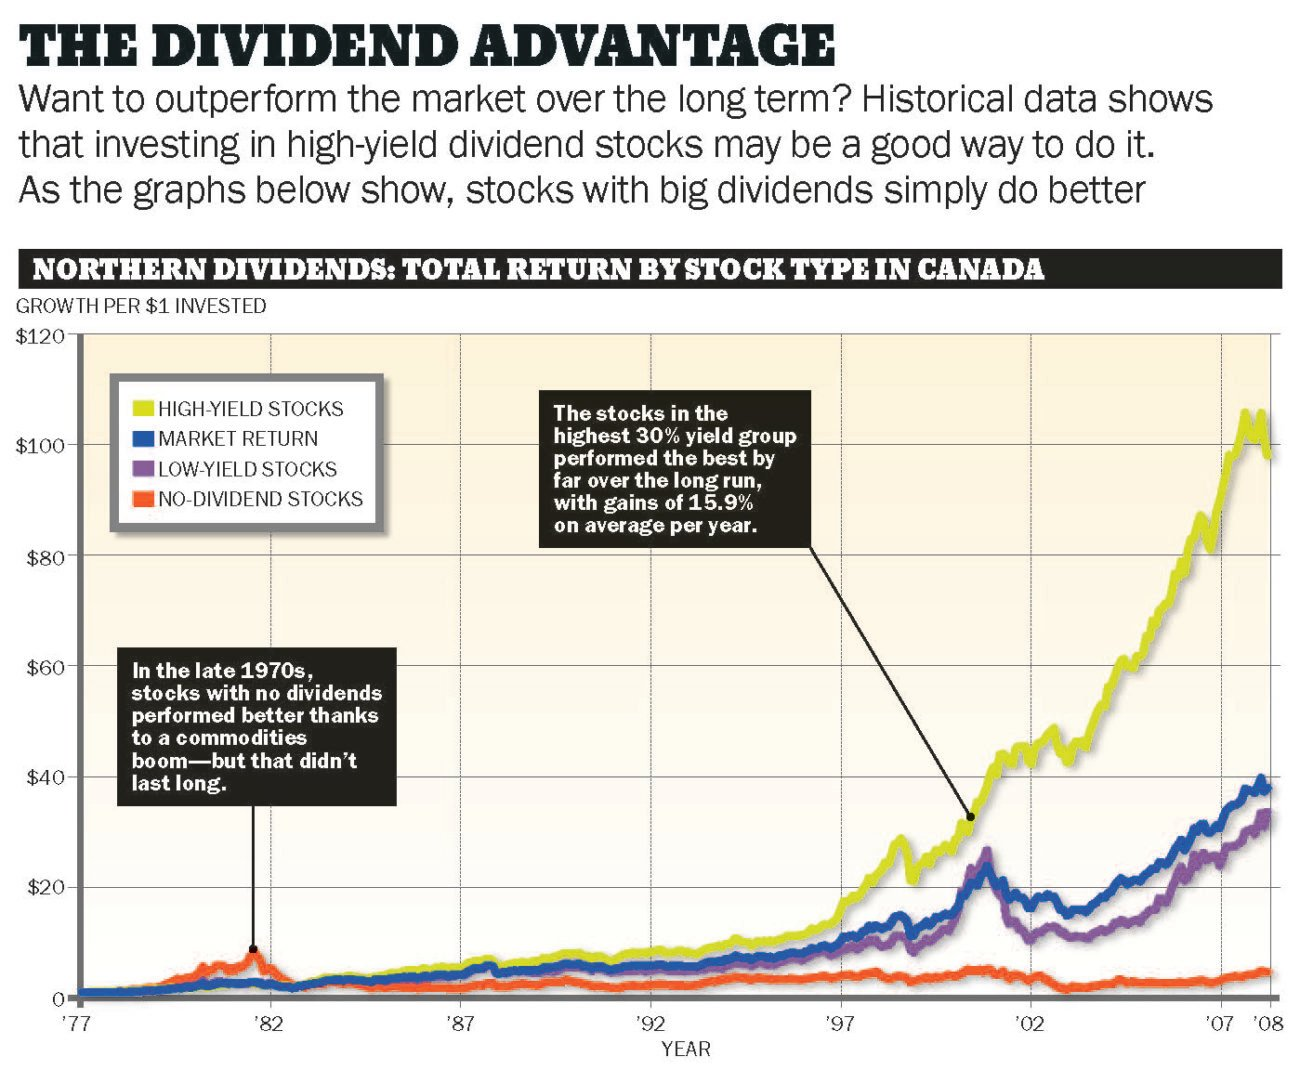 Stock options pay dividends